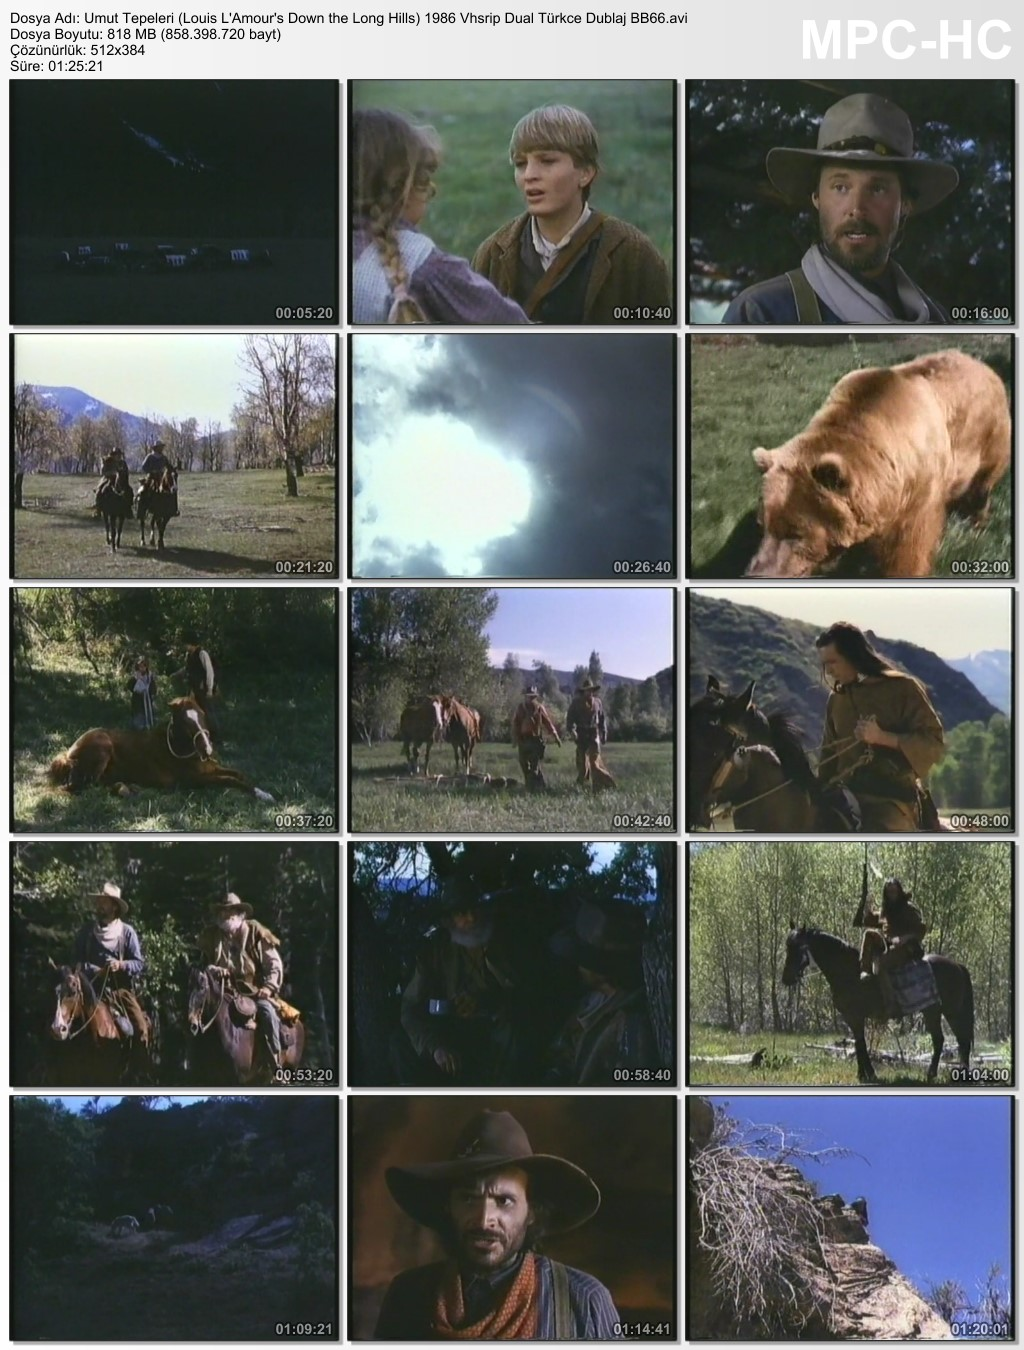 Umut Tepeleri (Louis L'Amour's Down the Long Hills) 1986 Vhsrip Dual Türkce Dublaj BB66 - barbarus